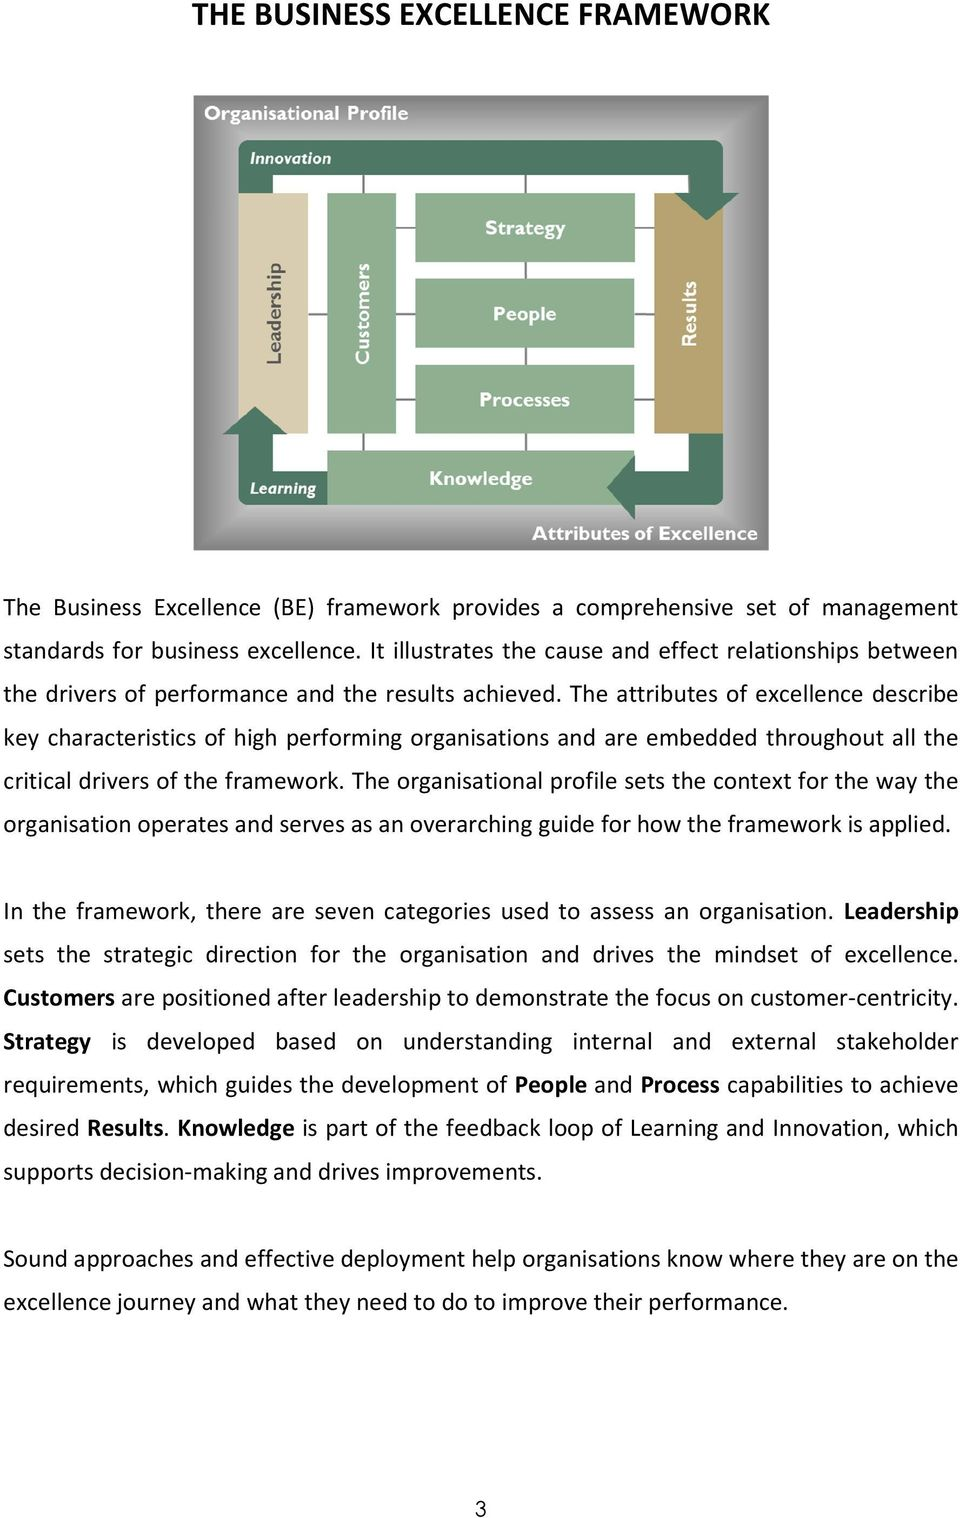 The attributes of excellence describe key characteristics of high performing organisations and are embedded throughout all the critical drivers of the framework.